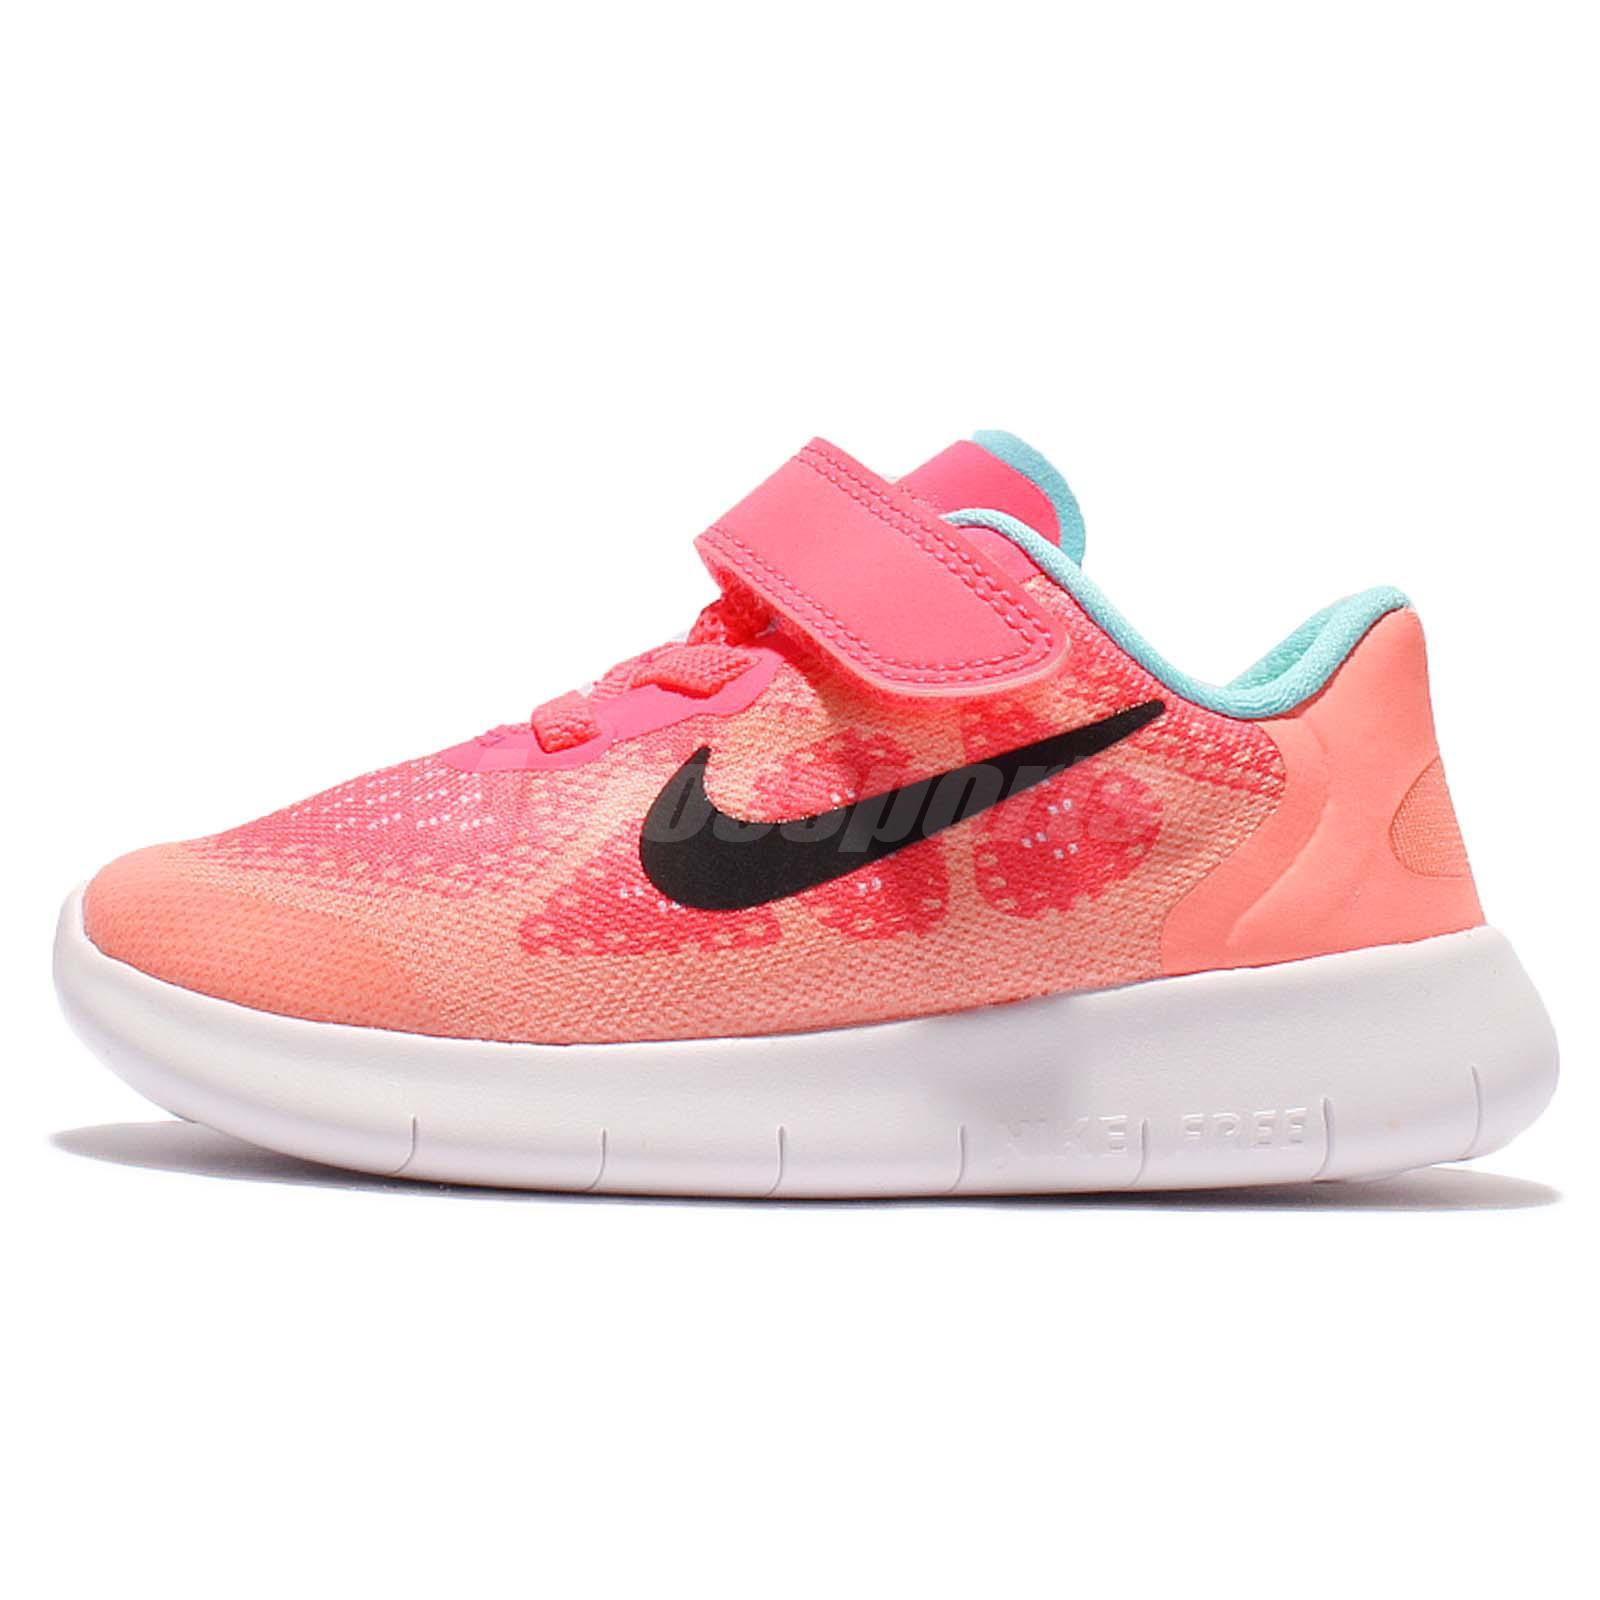 0dfb2323c35 Nike Free RN 2017 TDV Run Racer Pink Toddler Baby Running Shoes 904261-600